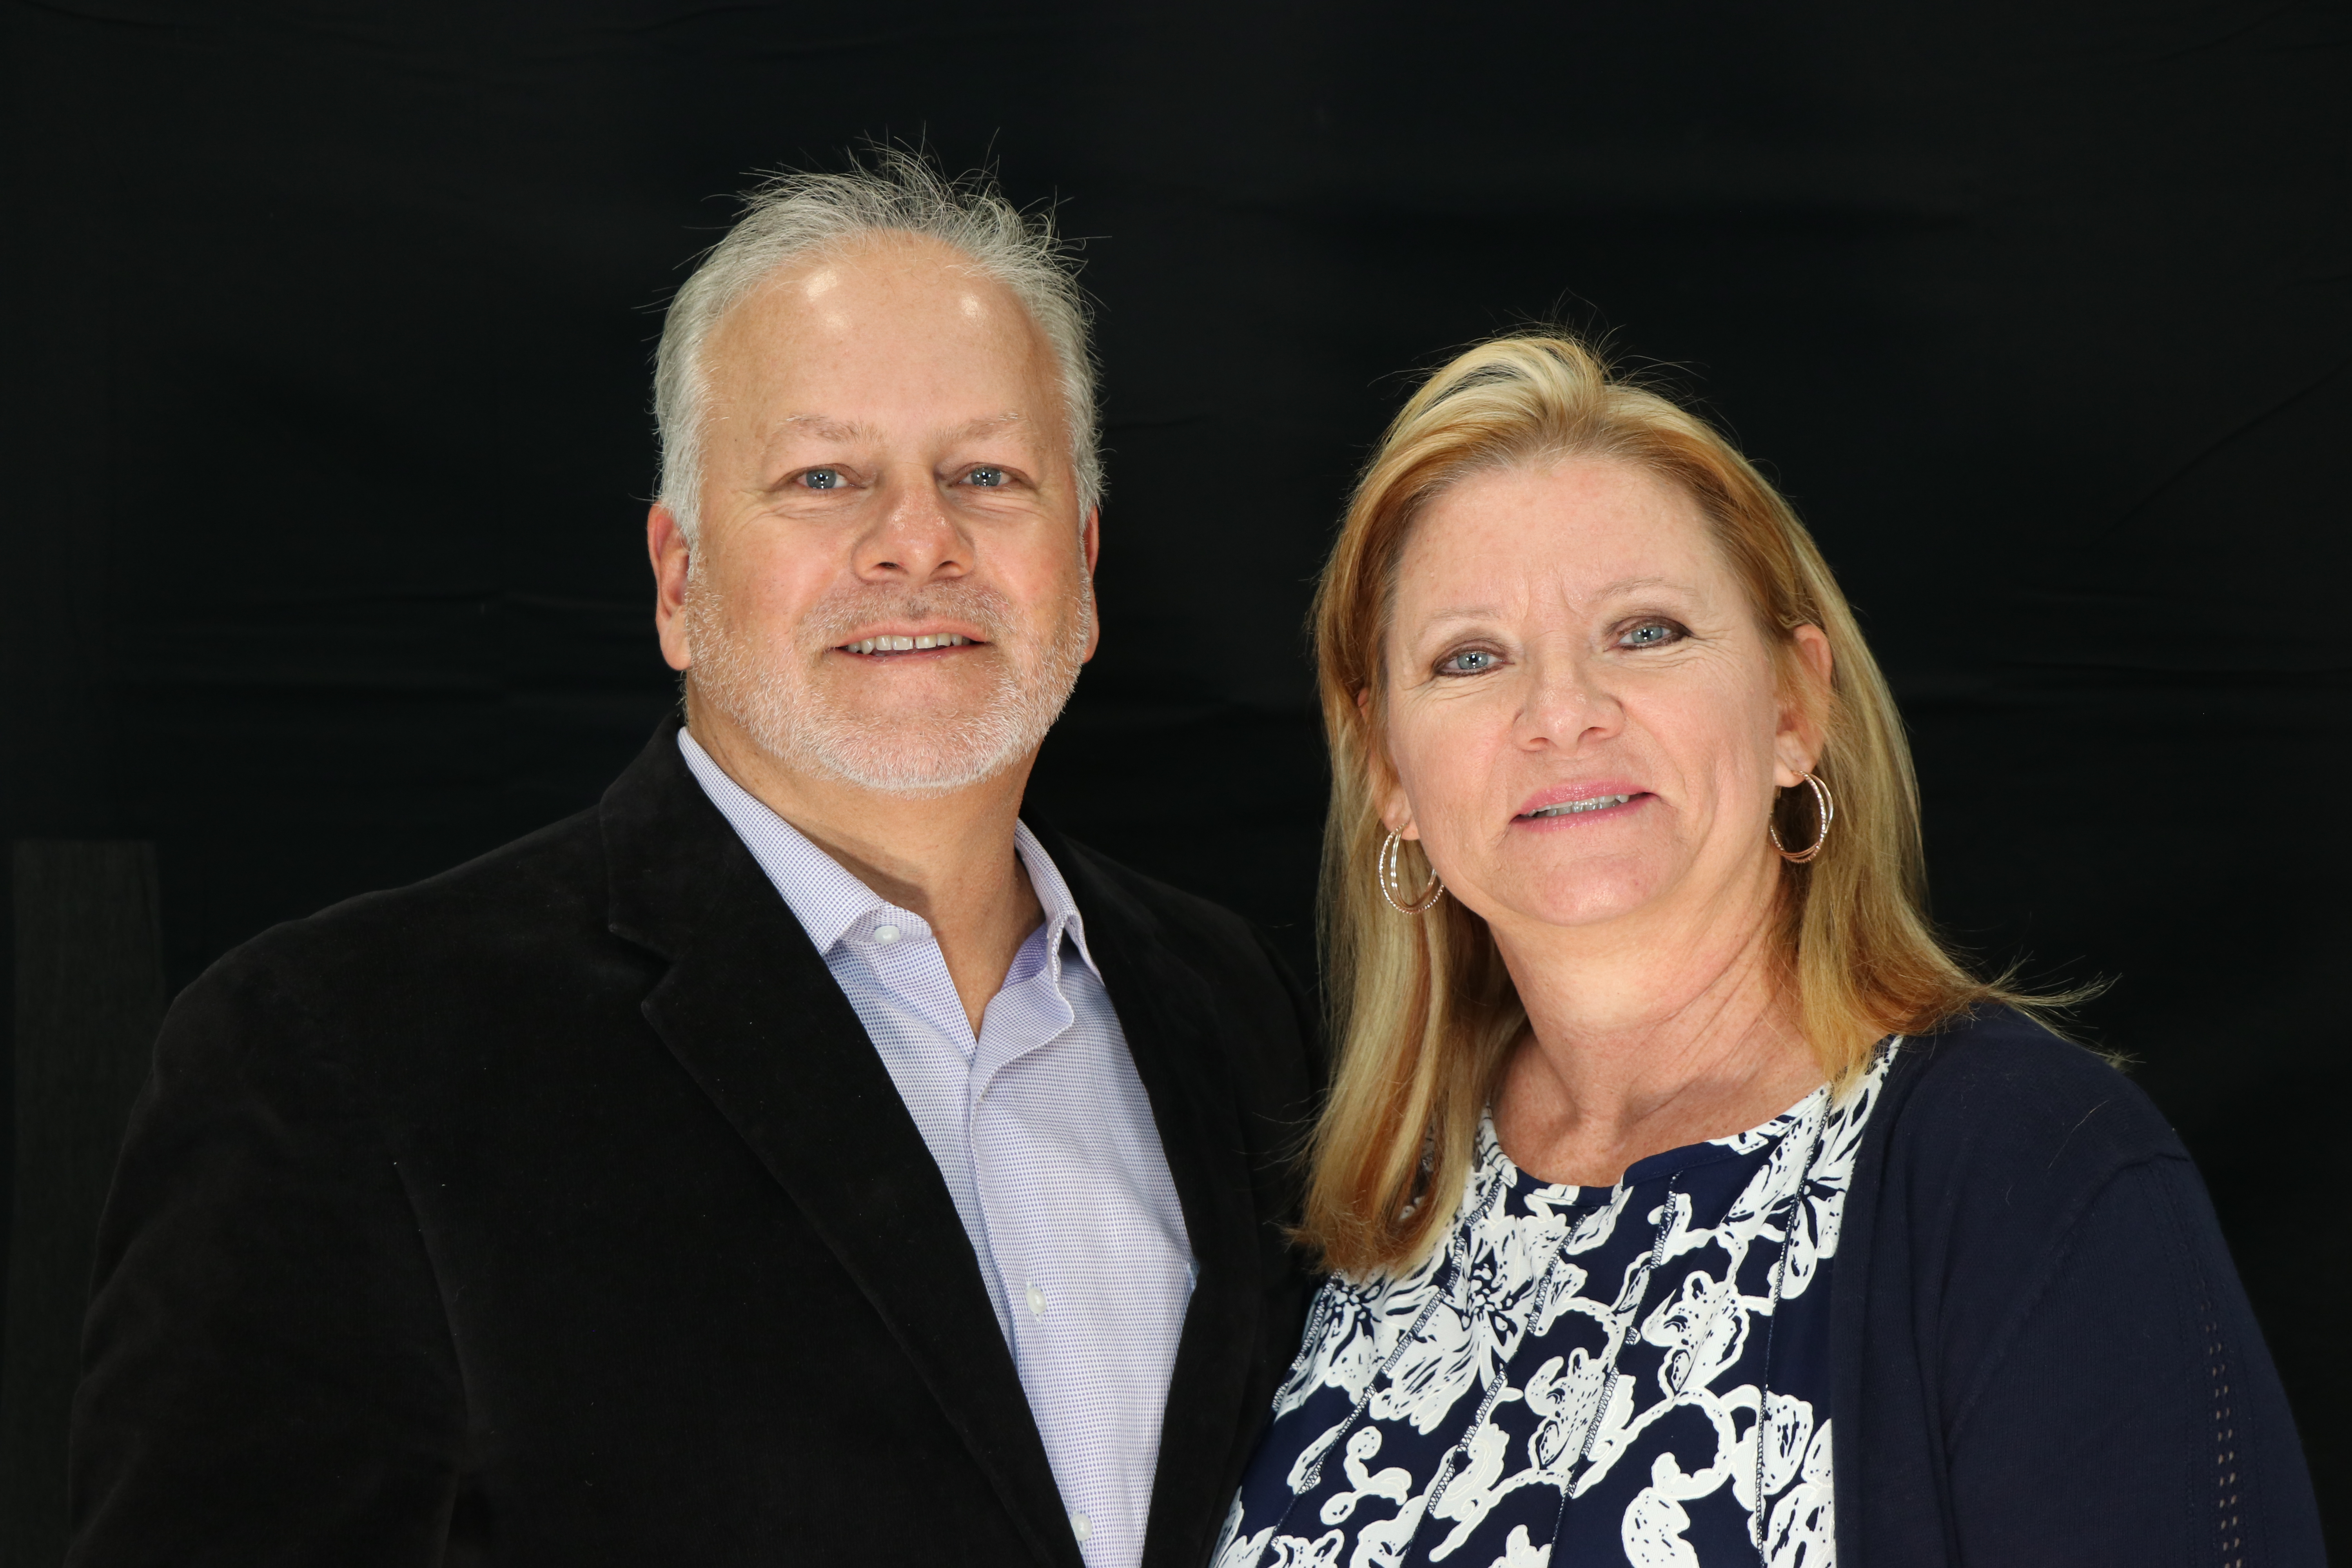 Max F Tennies & Kimberly Tennies Brokers/Owners, Assist2Sell Real Estate | Assist2SellHomes.com